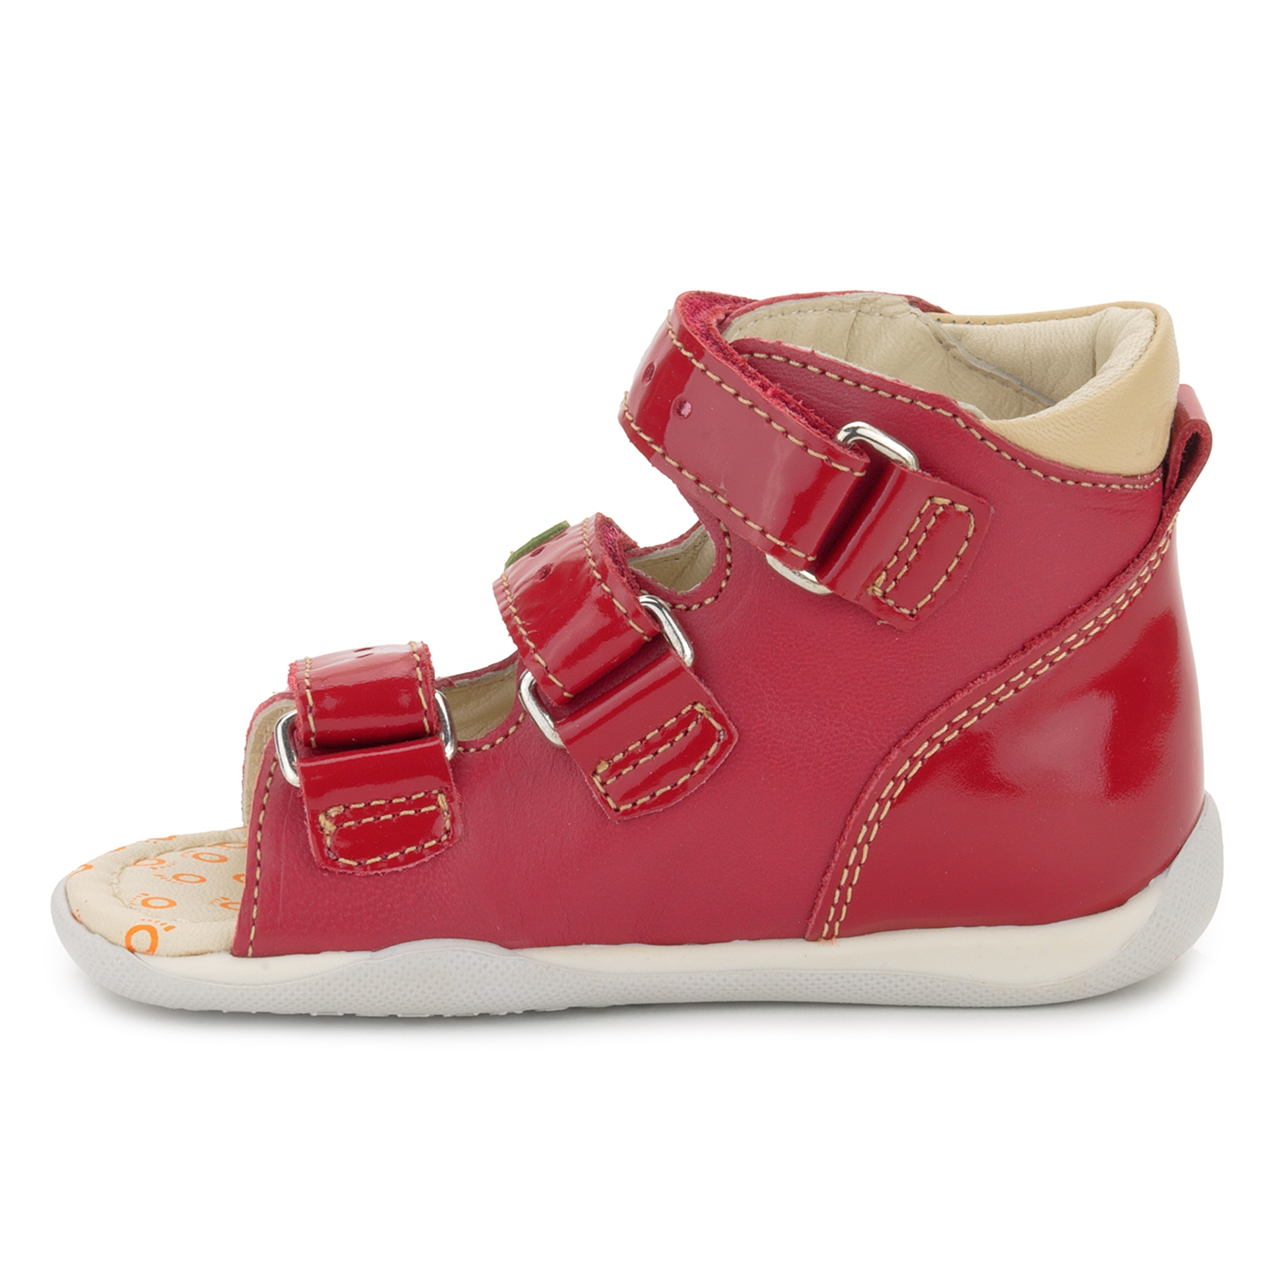 Memo Shoes Memo Dino 3HA Red Infant & Toddler Girl & Boy